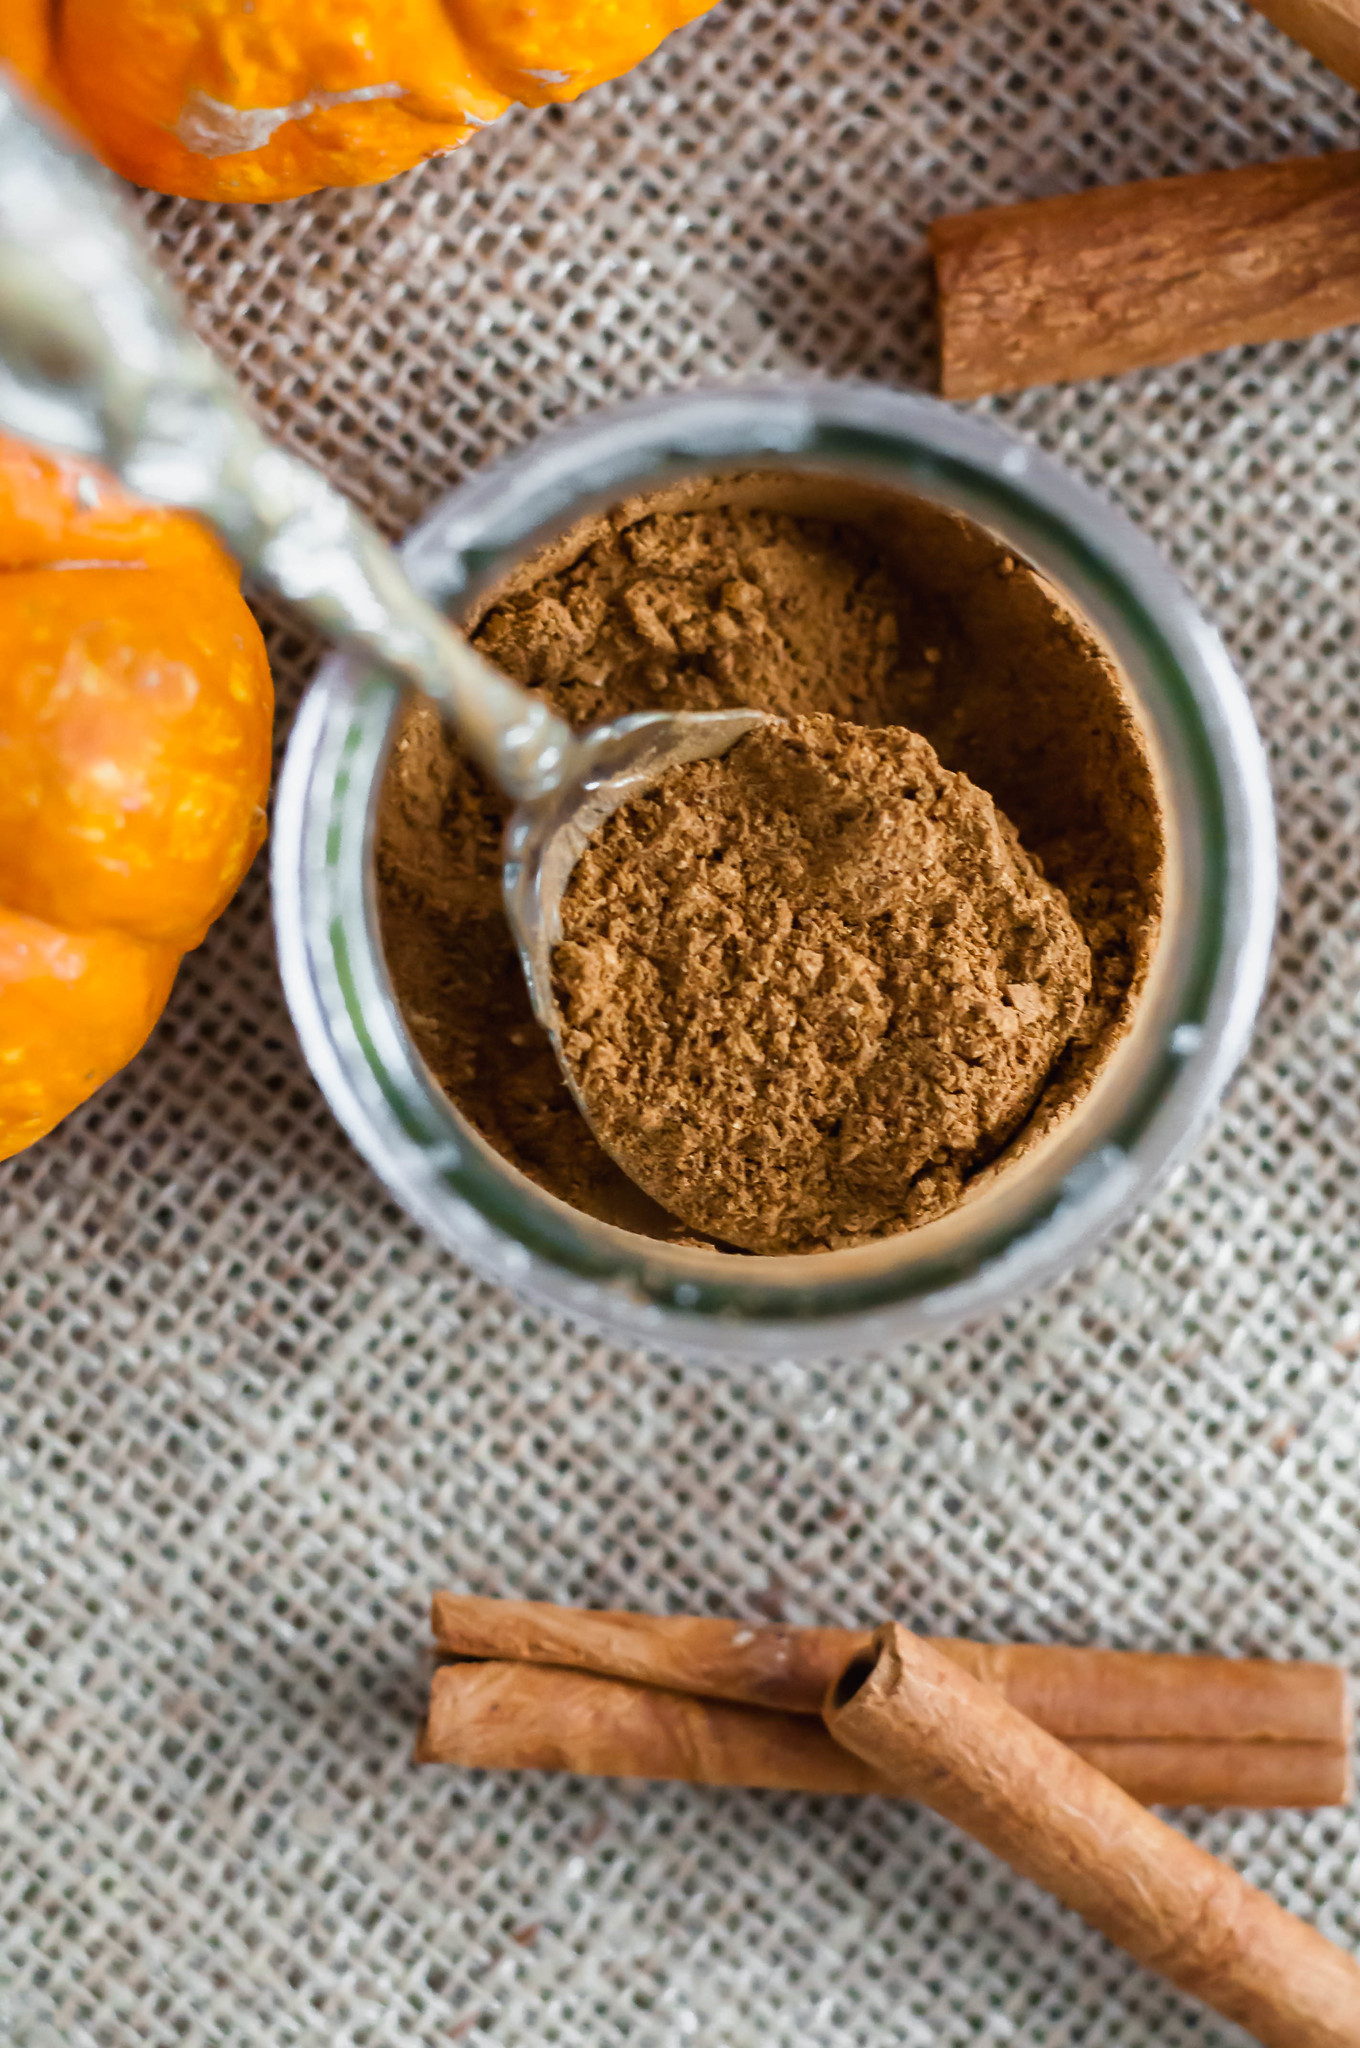 Skip the store-bought mix and make your own Pumpkin Pie Spice recipe at home. It's simple to make with common baking ingredients.